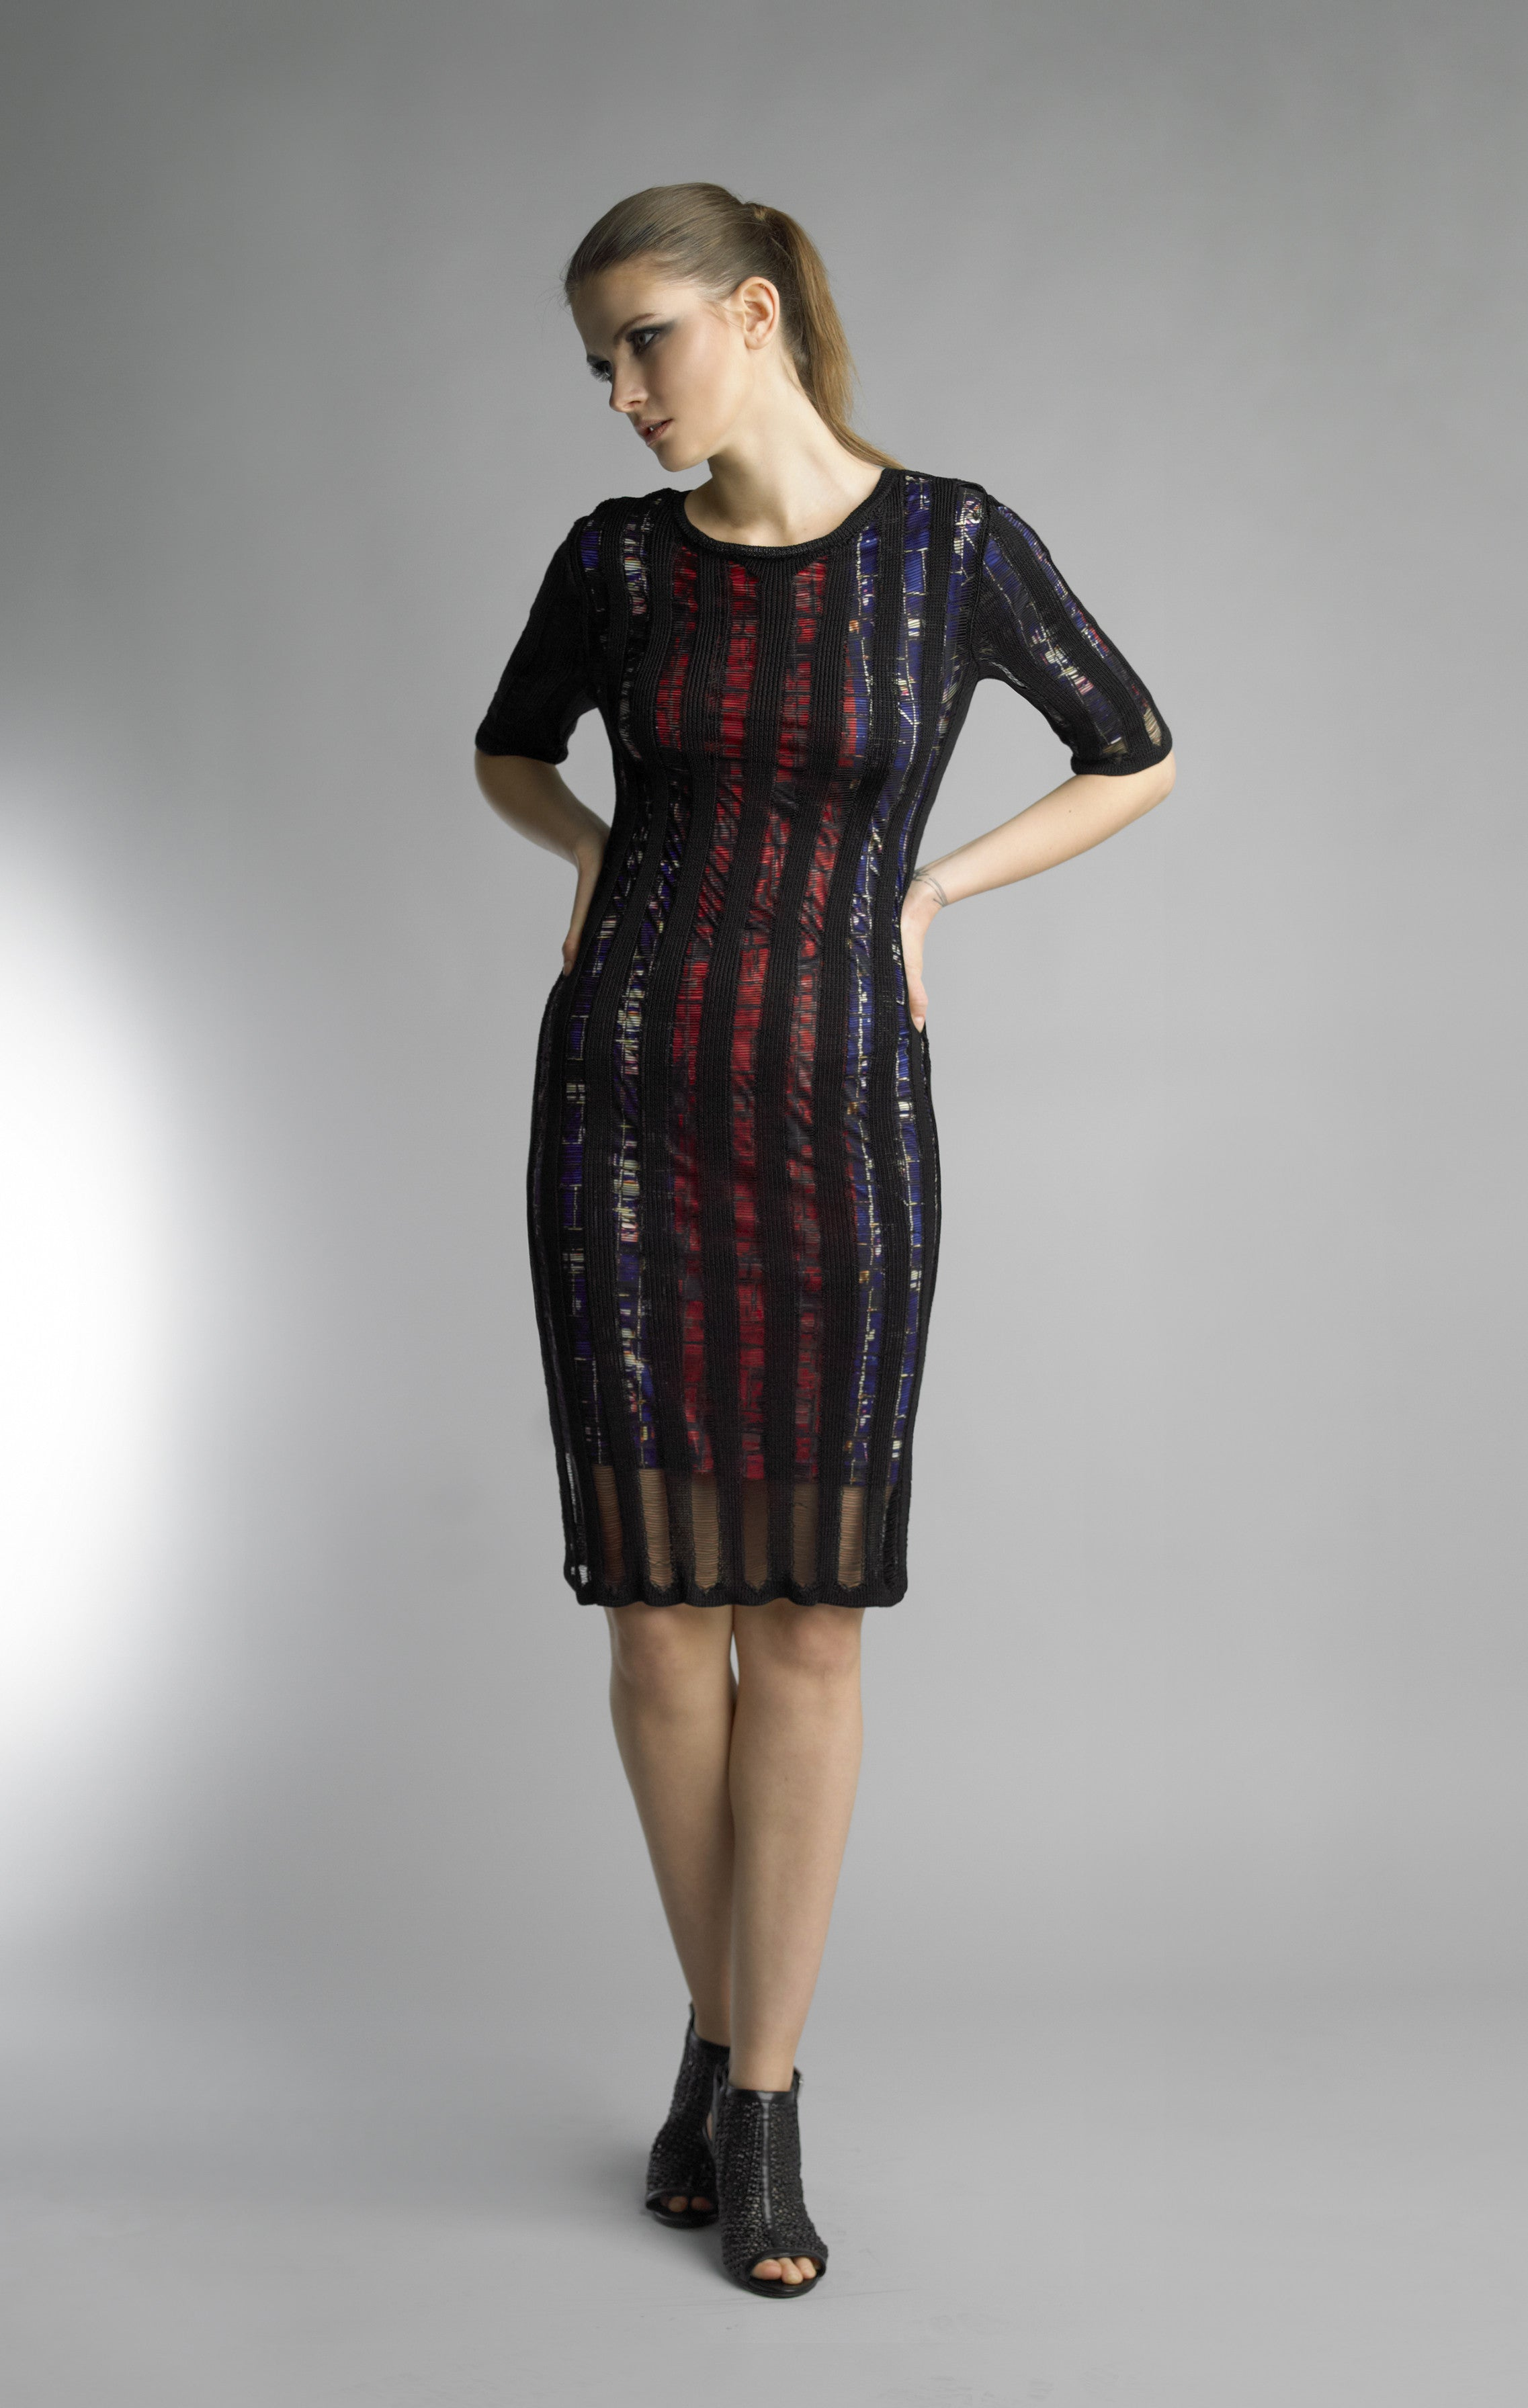 Historic New York Bleu et Rouge Robe de Vitrail Dress - Historic New York